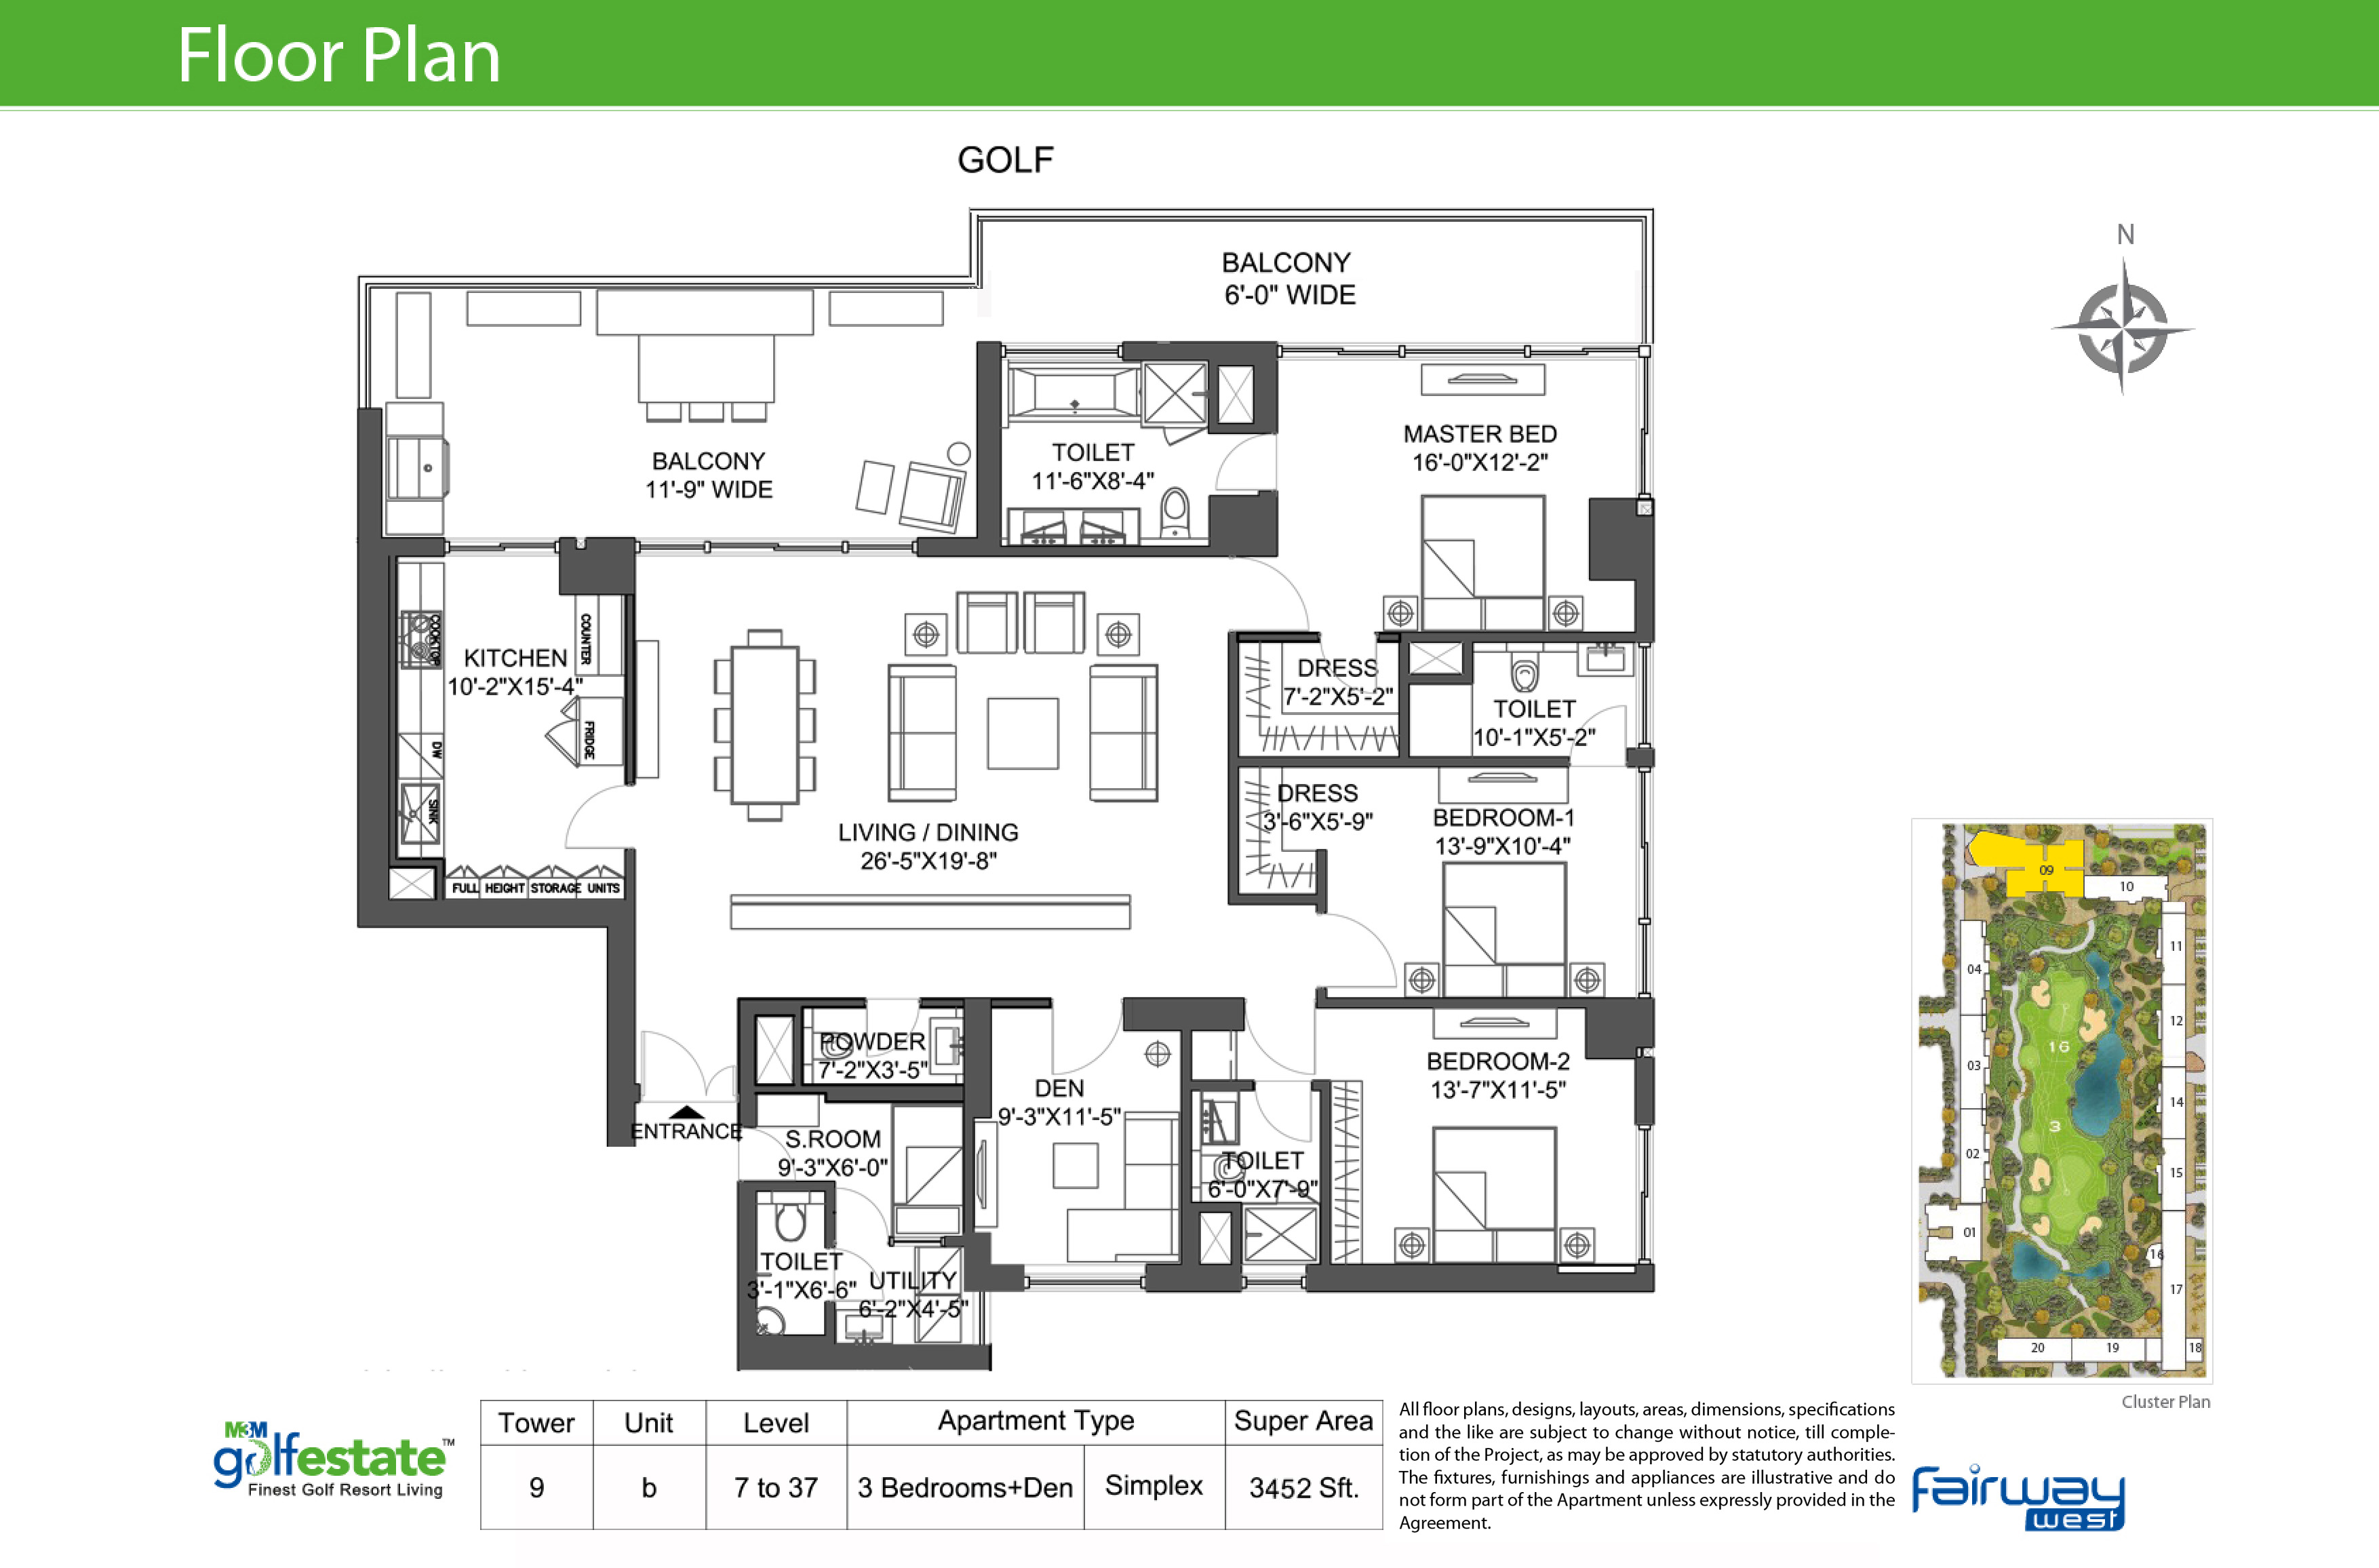 Floor plan of M3M Golf estate Fairway West 3452 Sqft